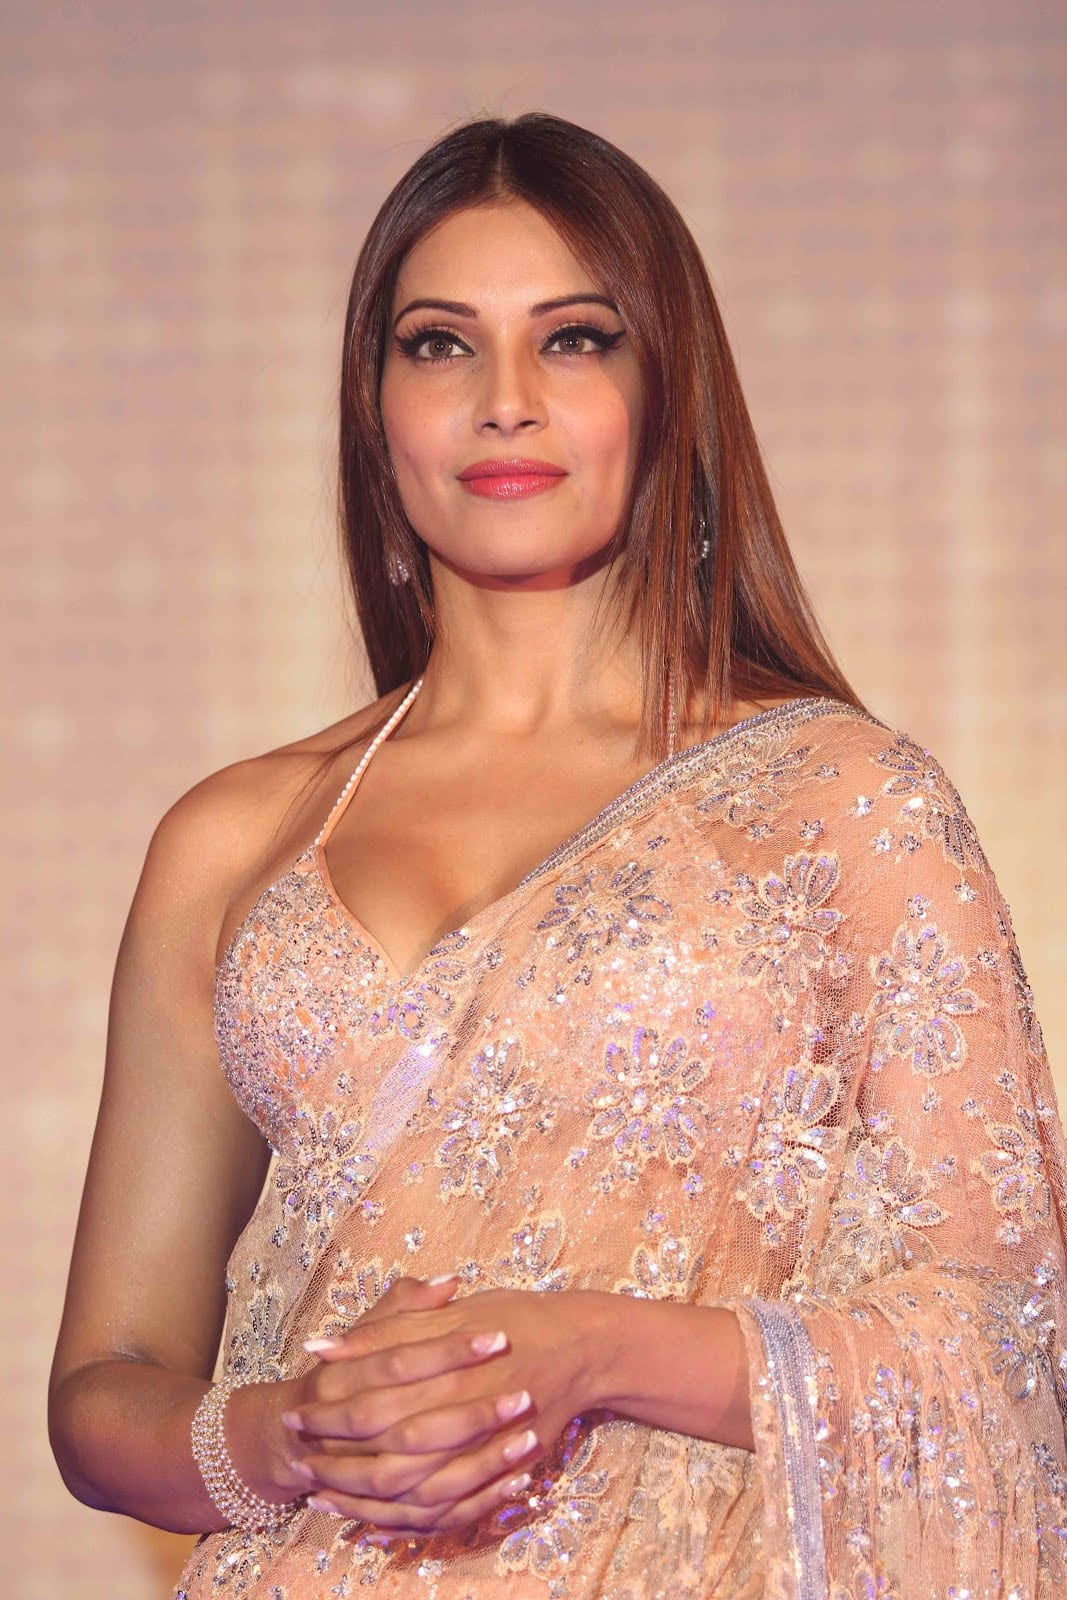 bipasha basu wishes to marry in bengali style - desimartini